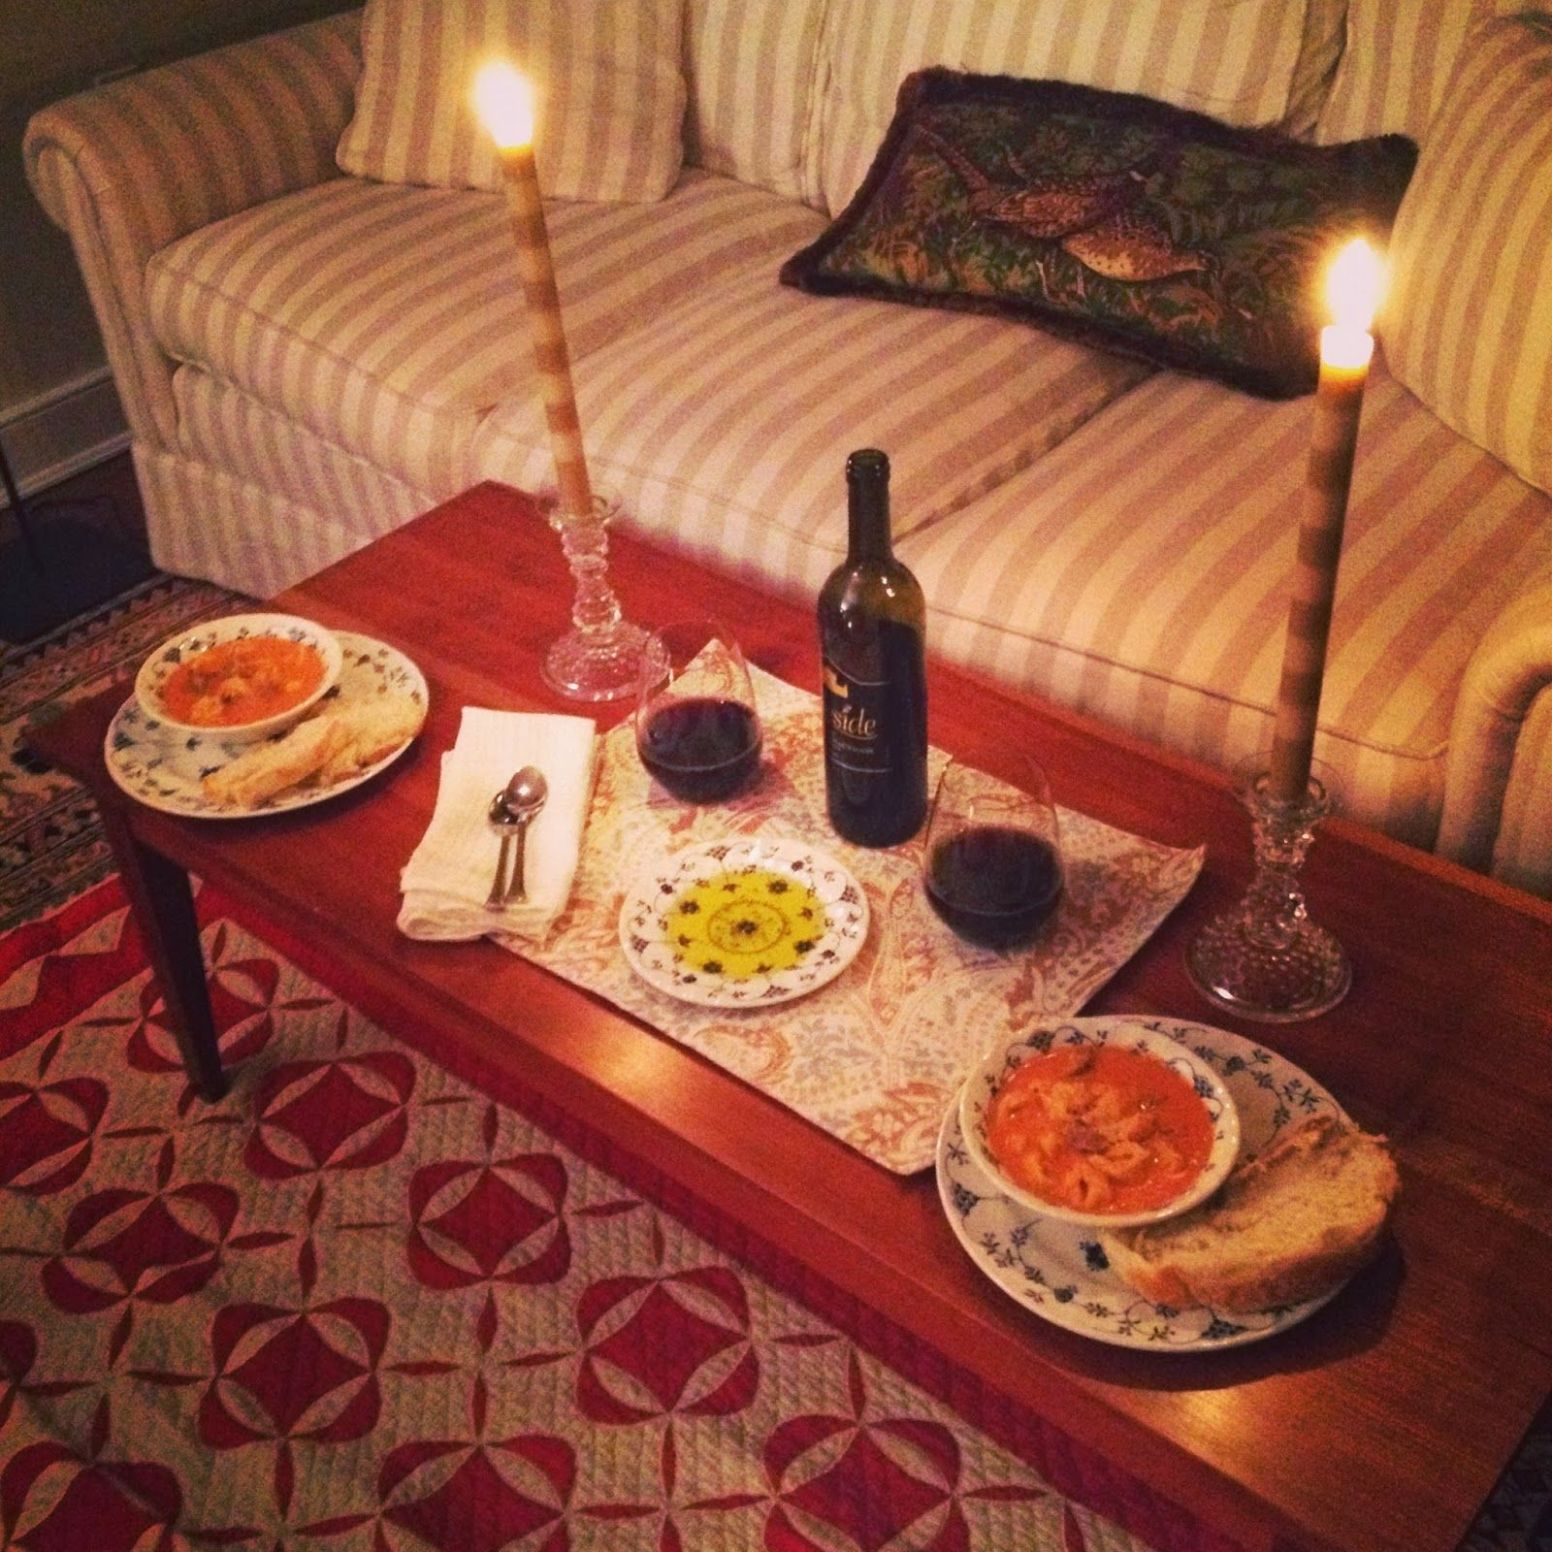 Romantic Dinner At Home On Floor Home Decor ~ duobux | Romantic ..